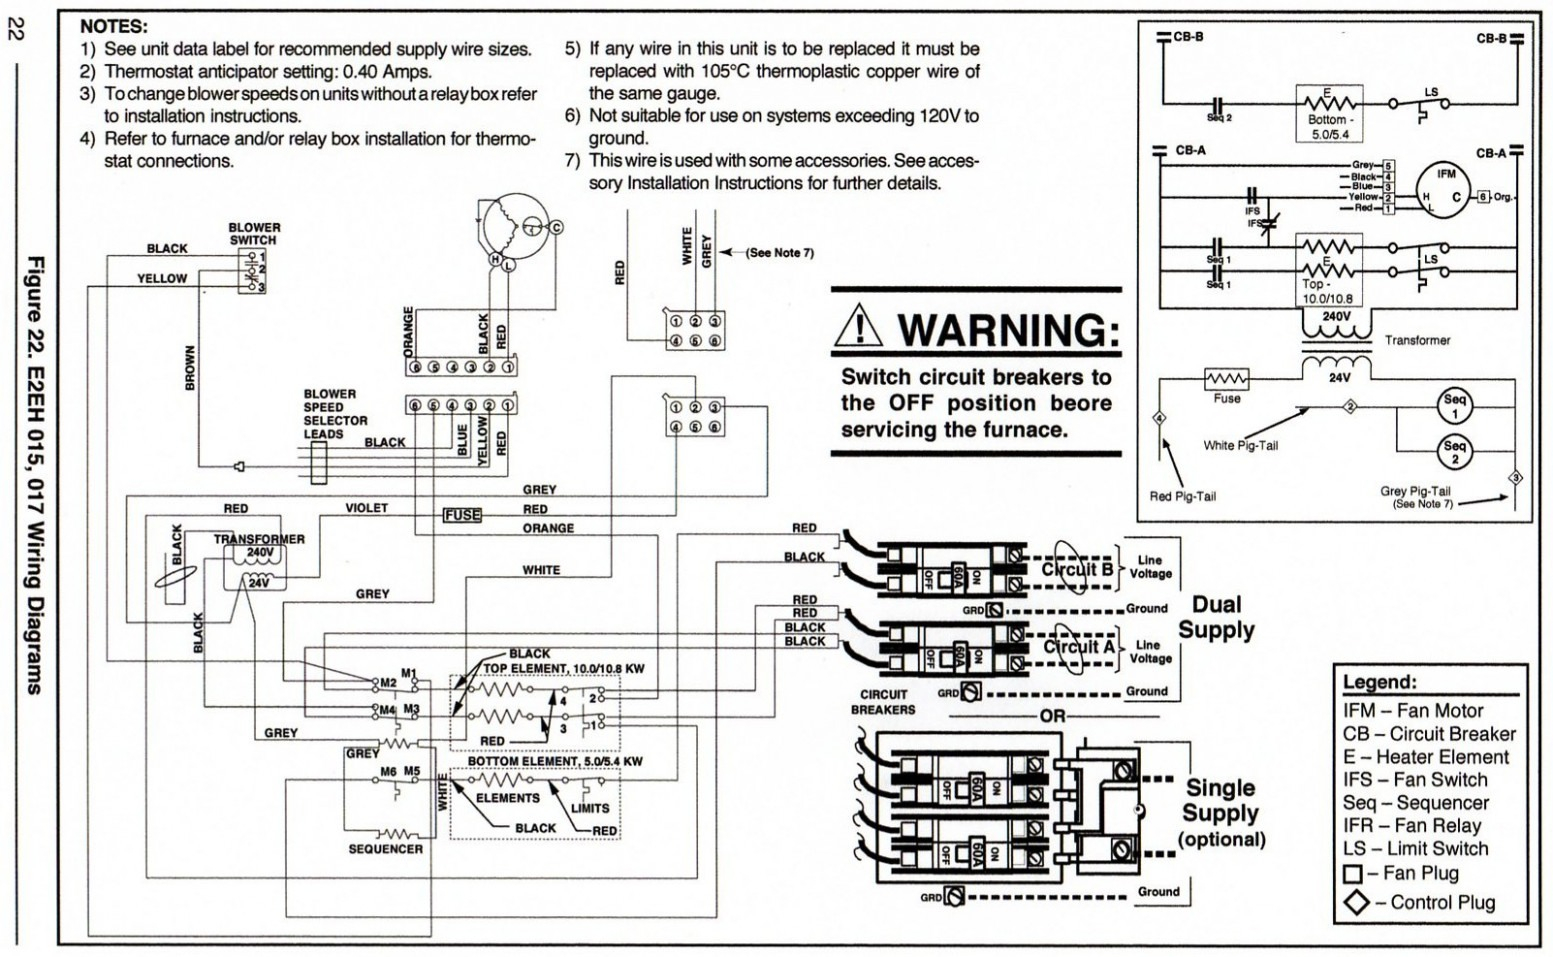 gas furnace schematic wiring diagram further air conditioning wiring rh paletteparty co